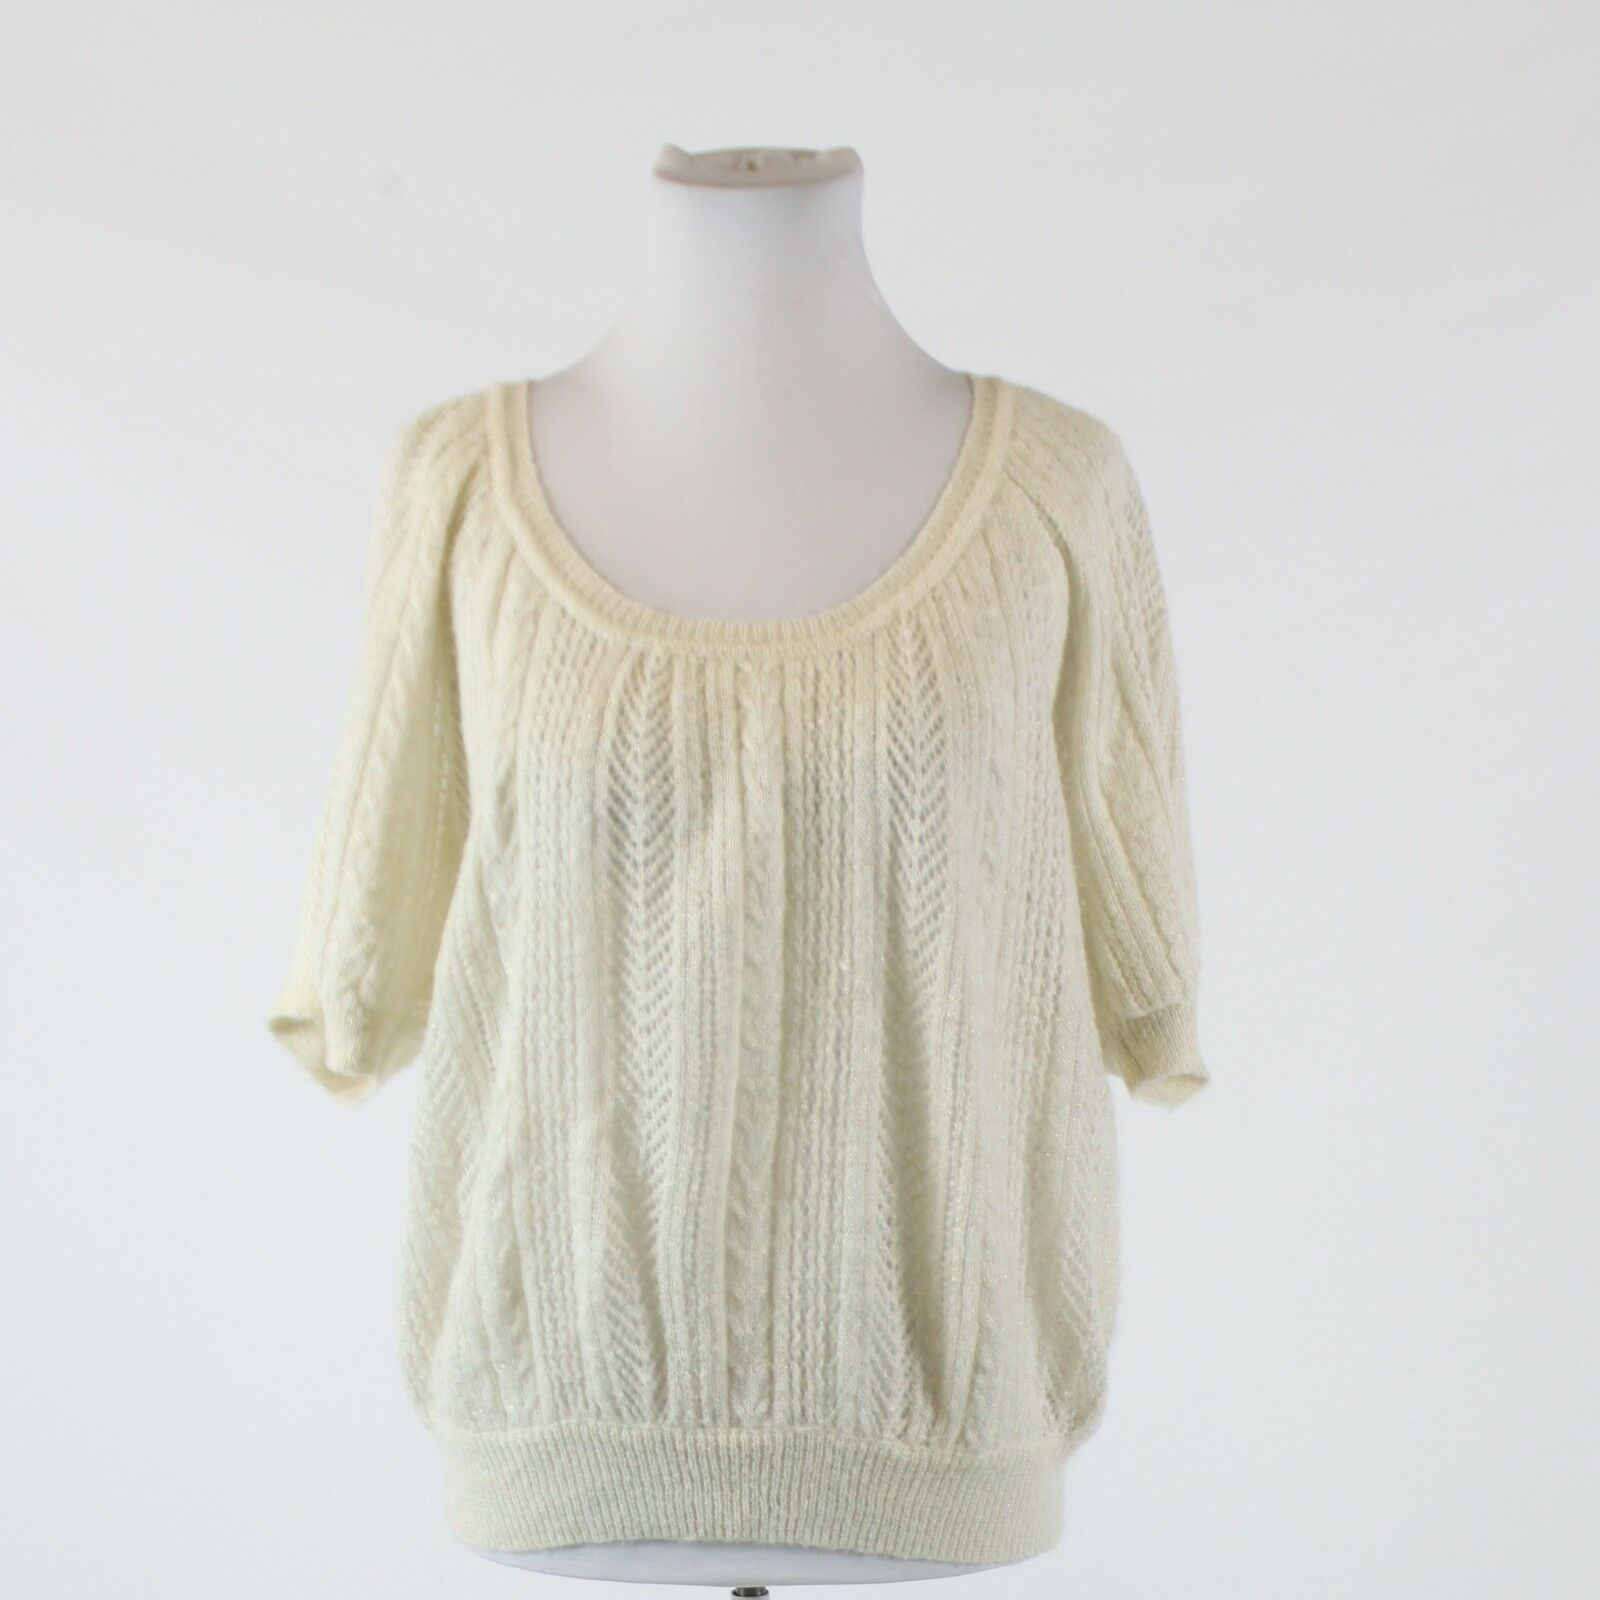 Ivory shimmery EXPRESS short sleeve scoop neck loose knit sweater blouse S